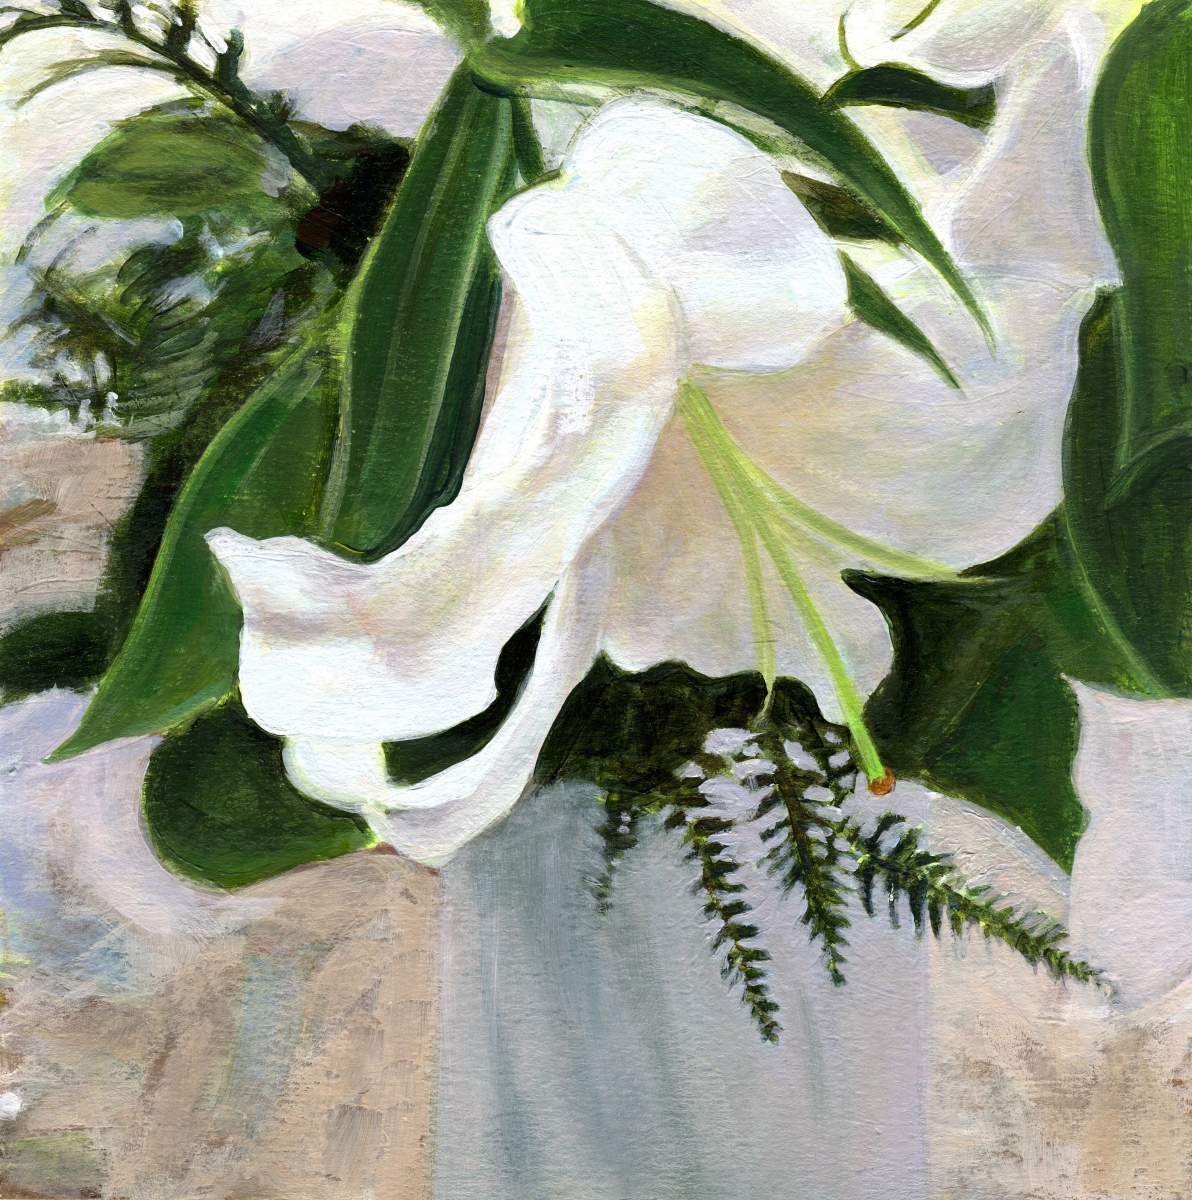 intimate view of lilies in vase (large view)